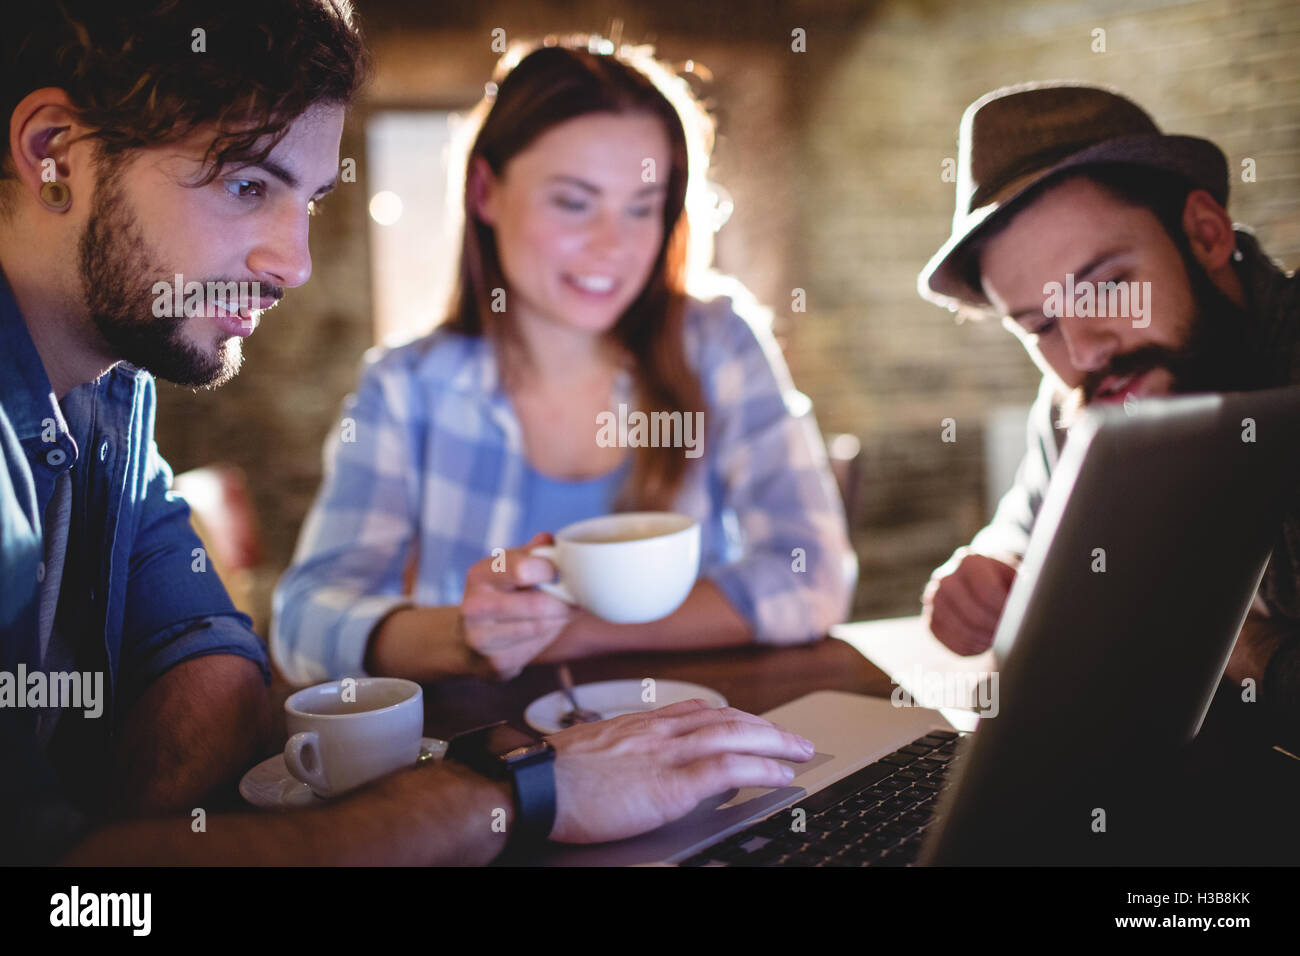 Man showing laptop to friends at cafe - Stock Image